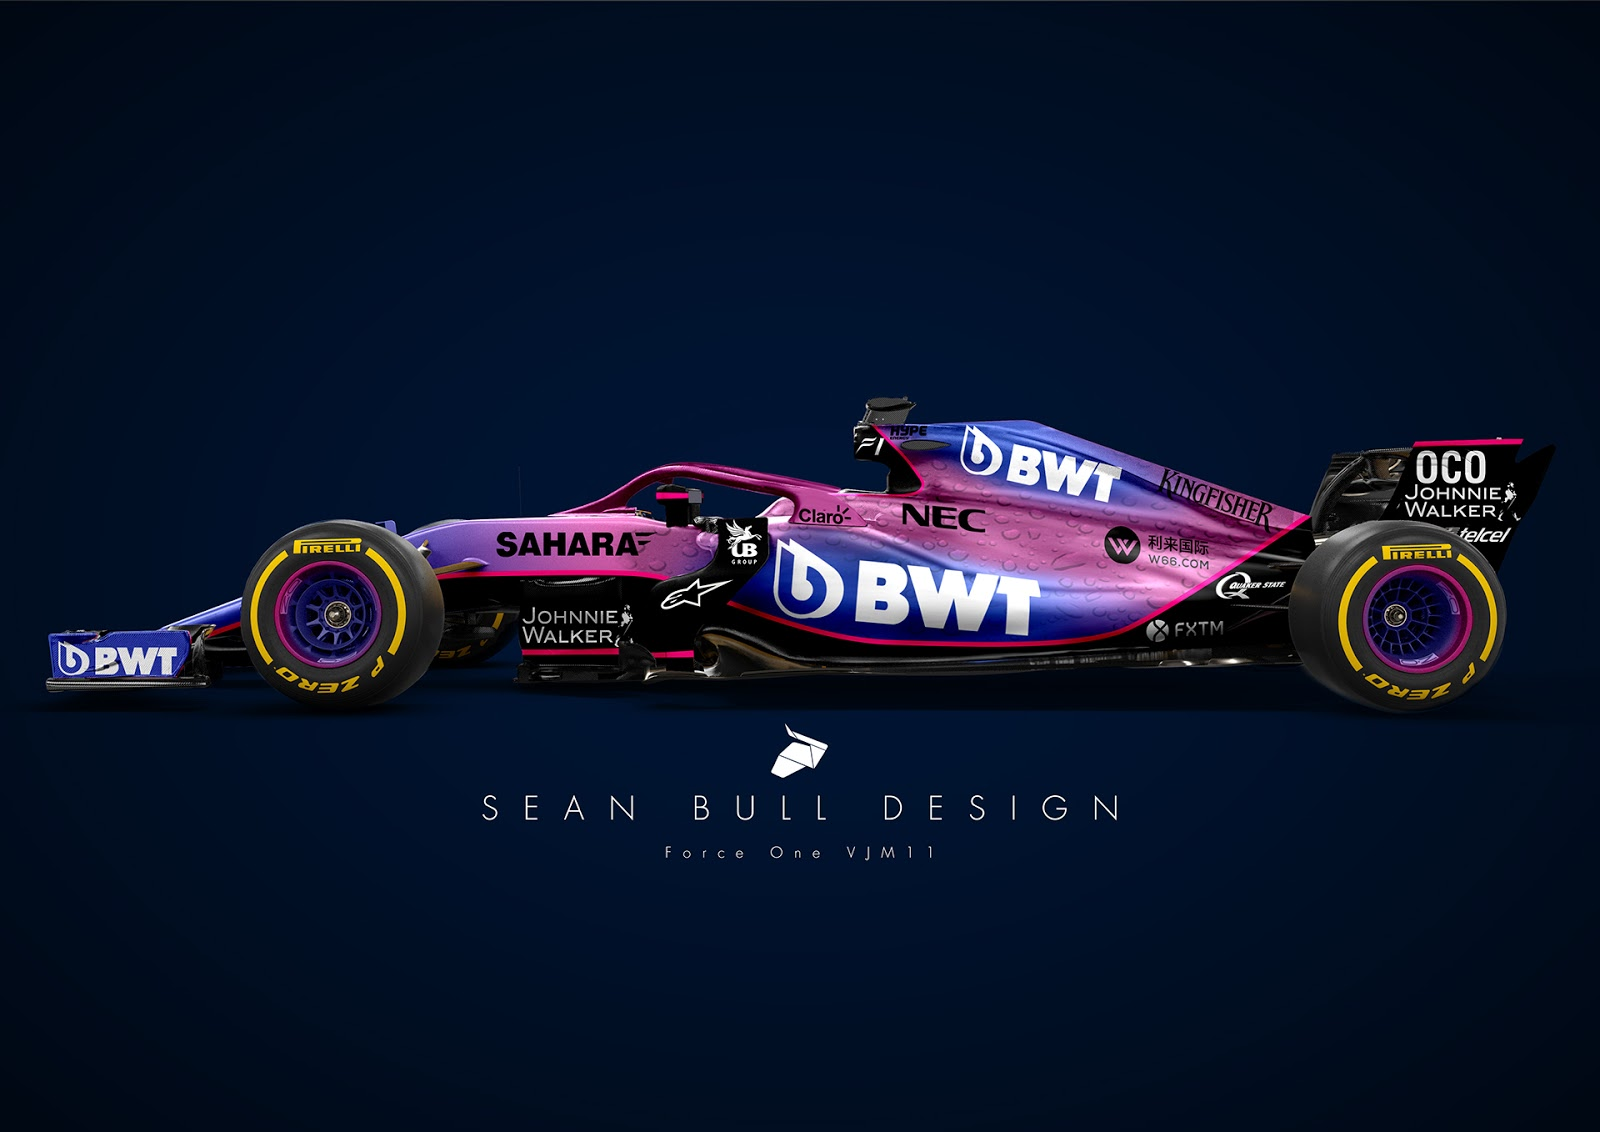 2018-F1-Car-Halo-Liveries-1